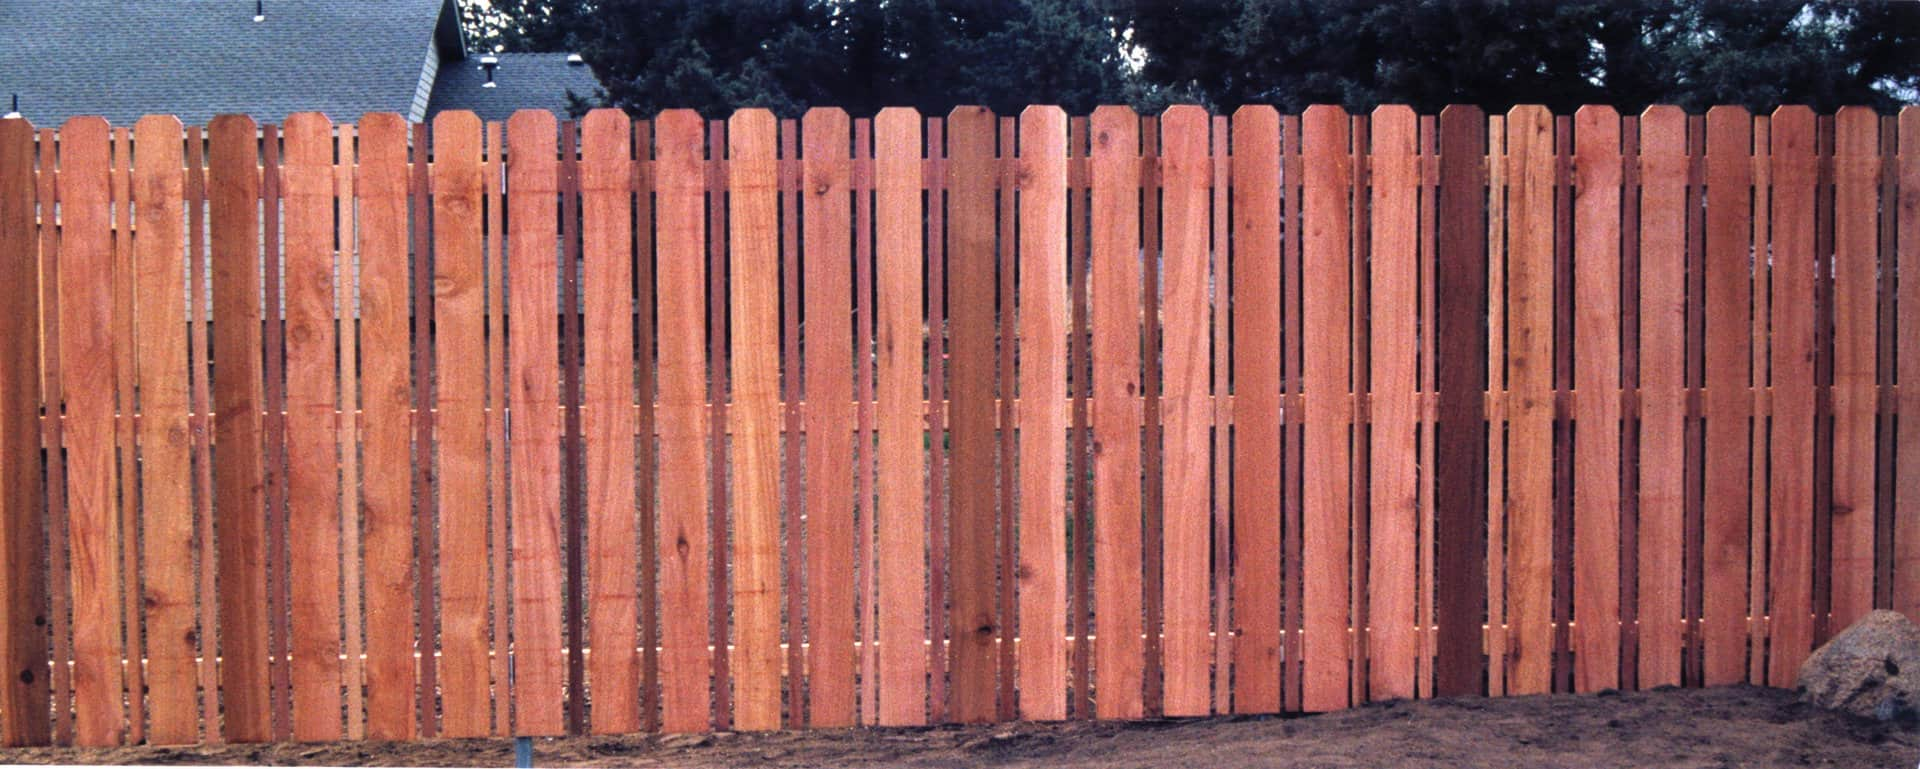 Sawtooth Cedar Picket